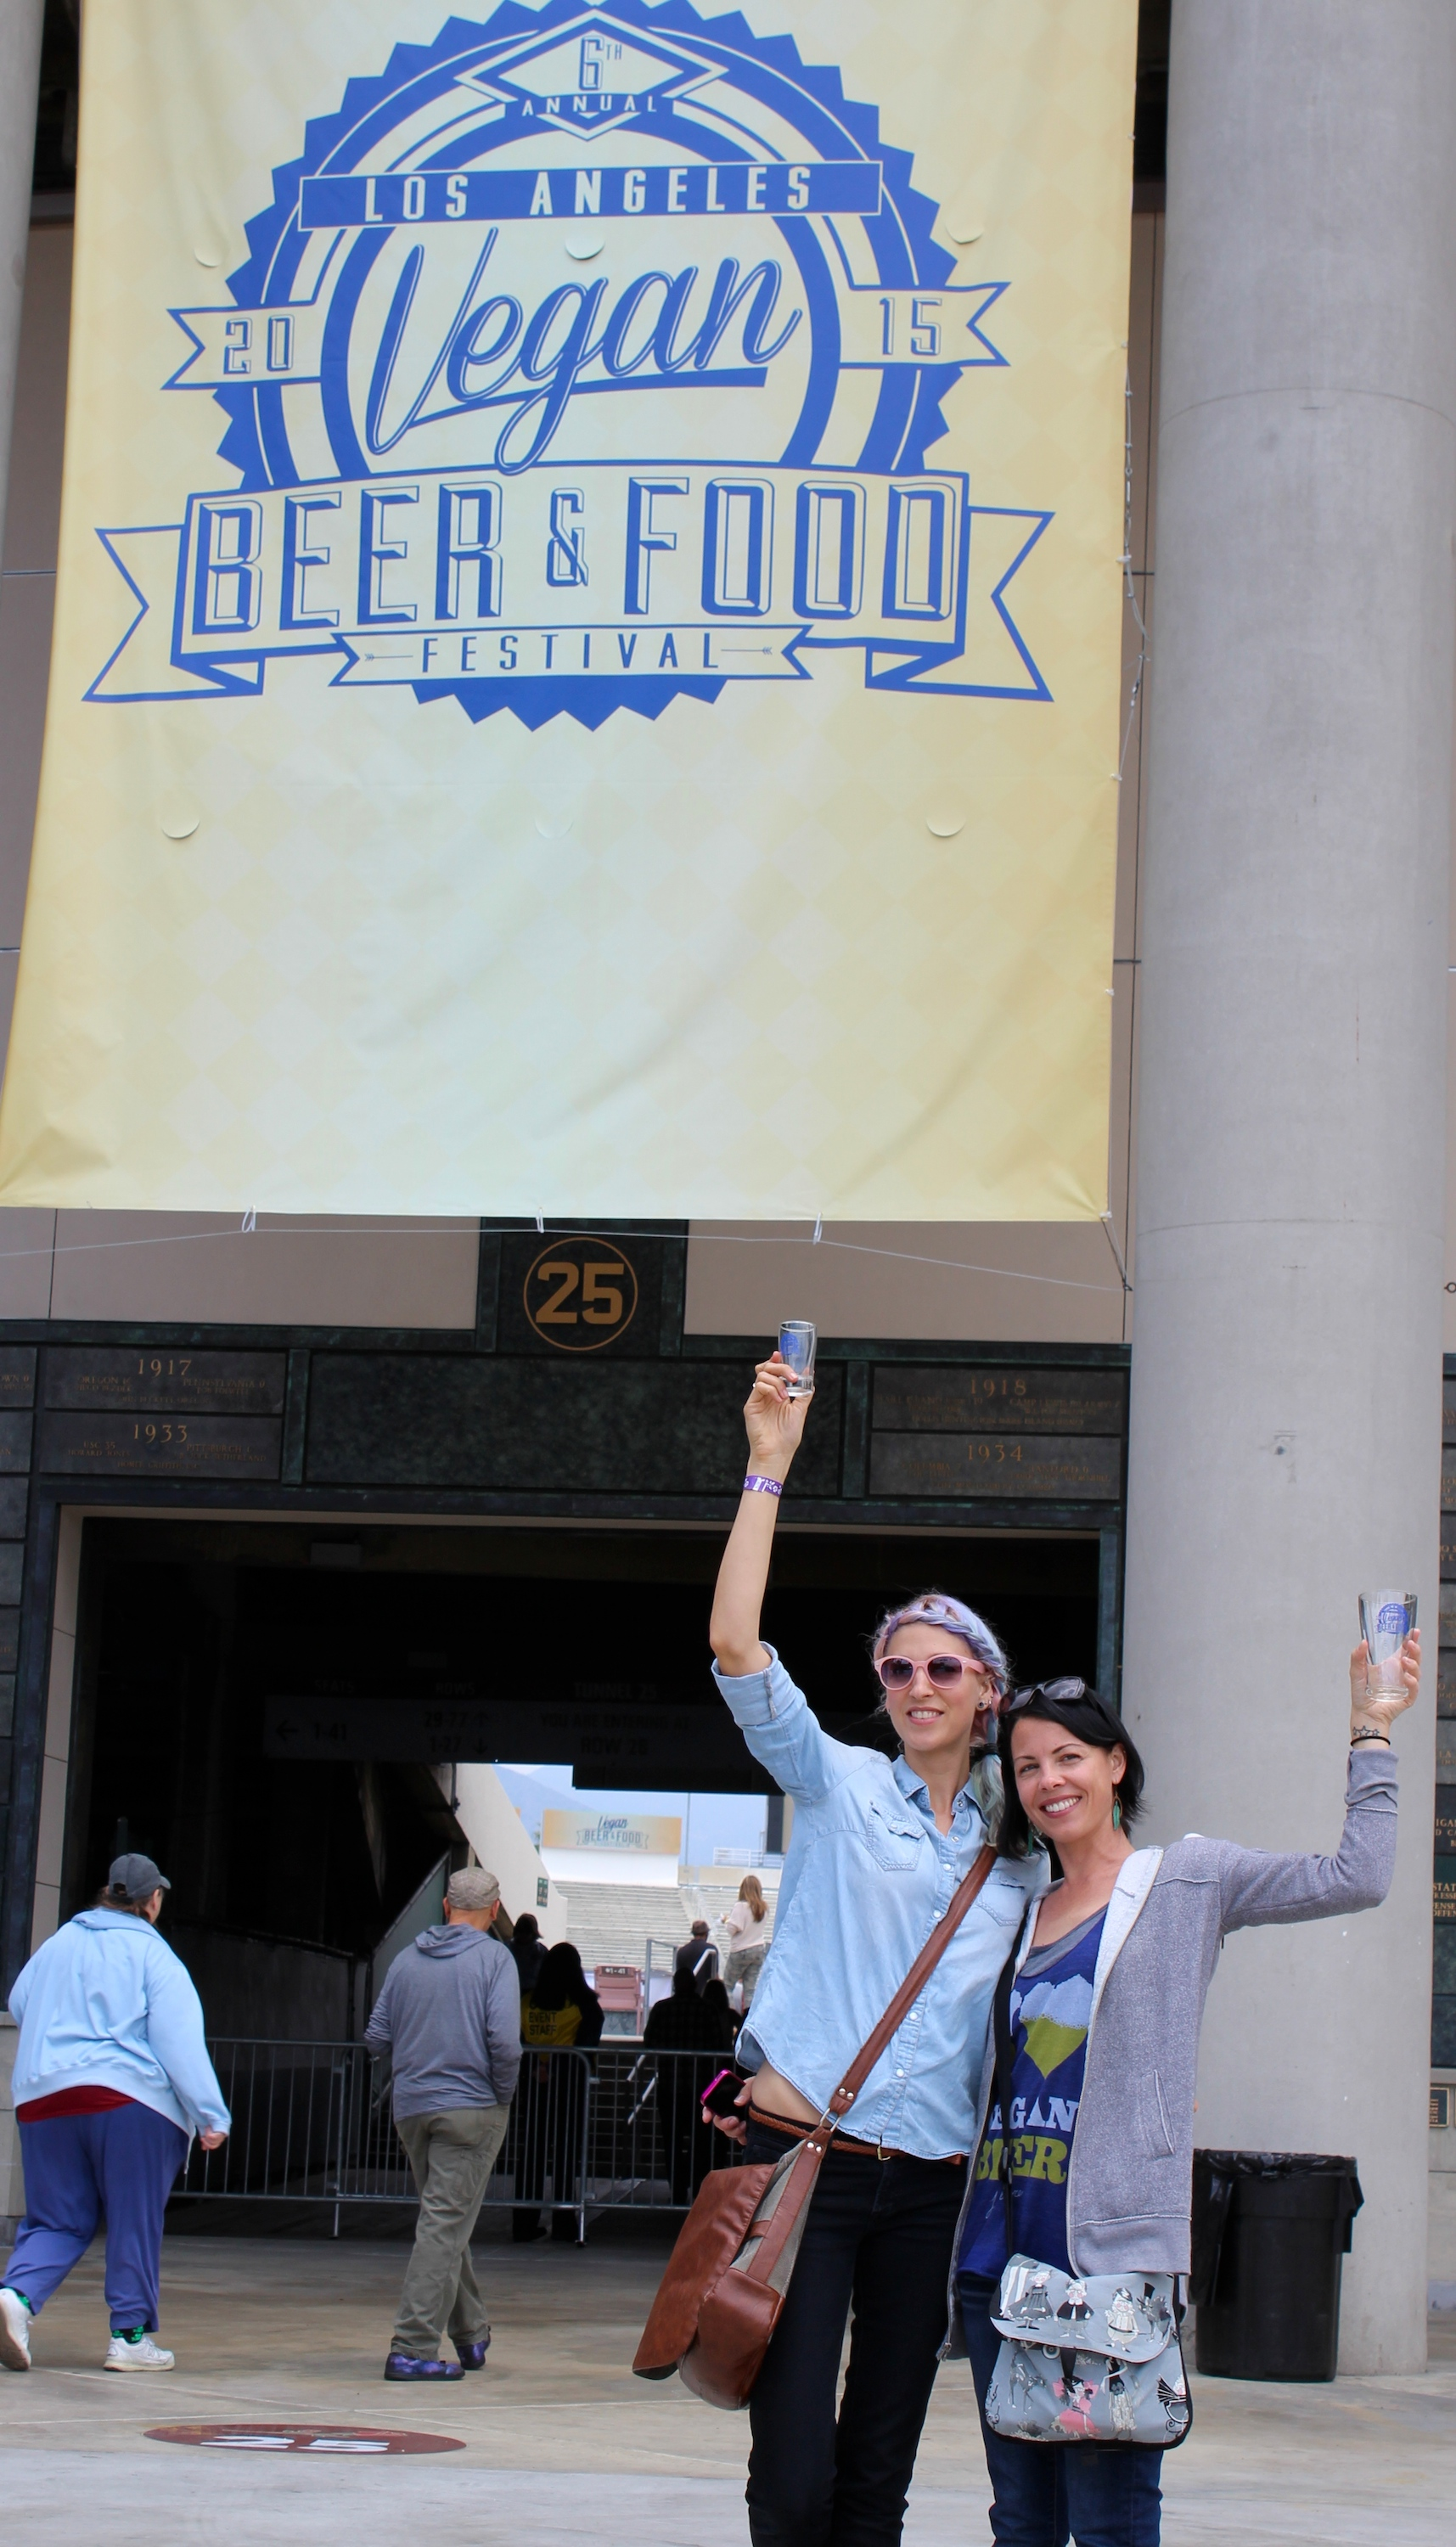 Fellowship of the Vegetable Vegan Beer Fest 2015 3